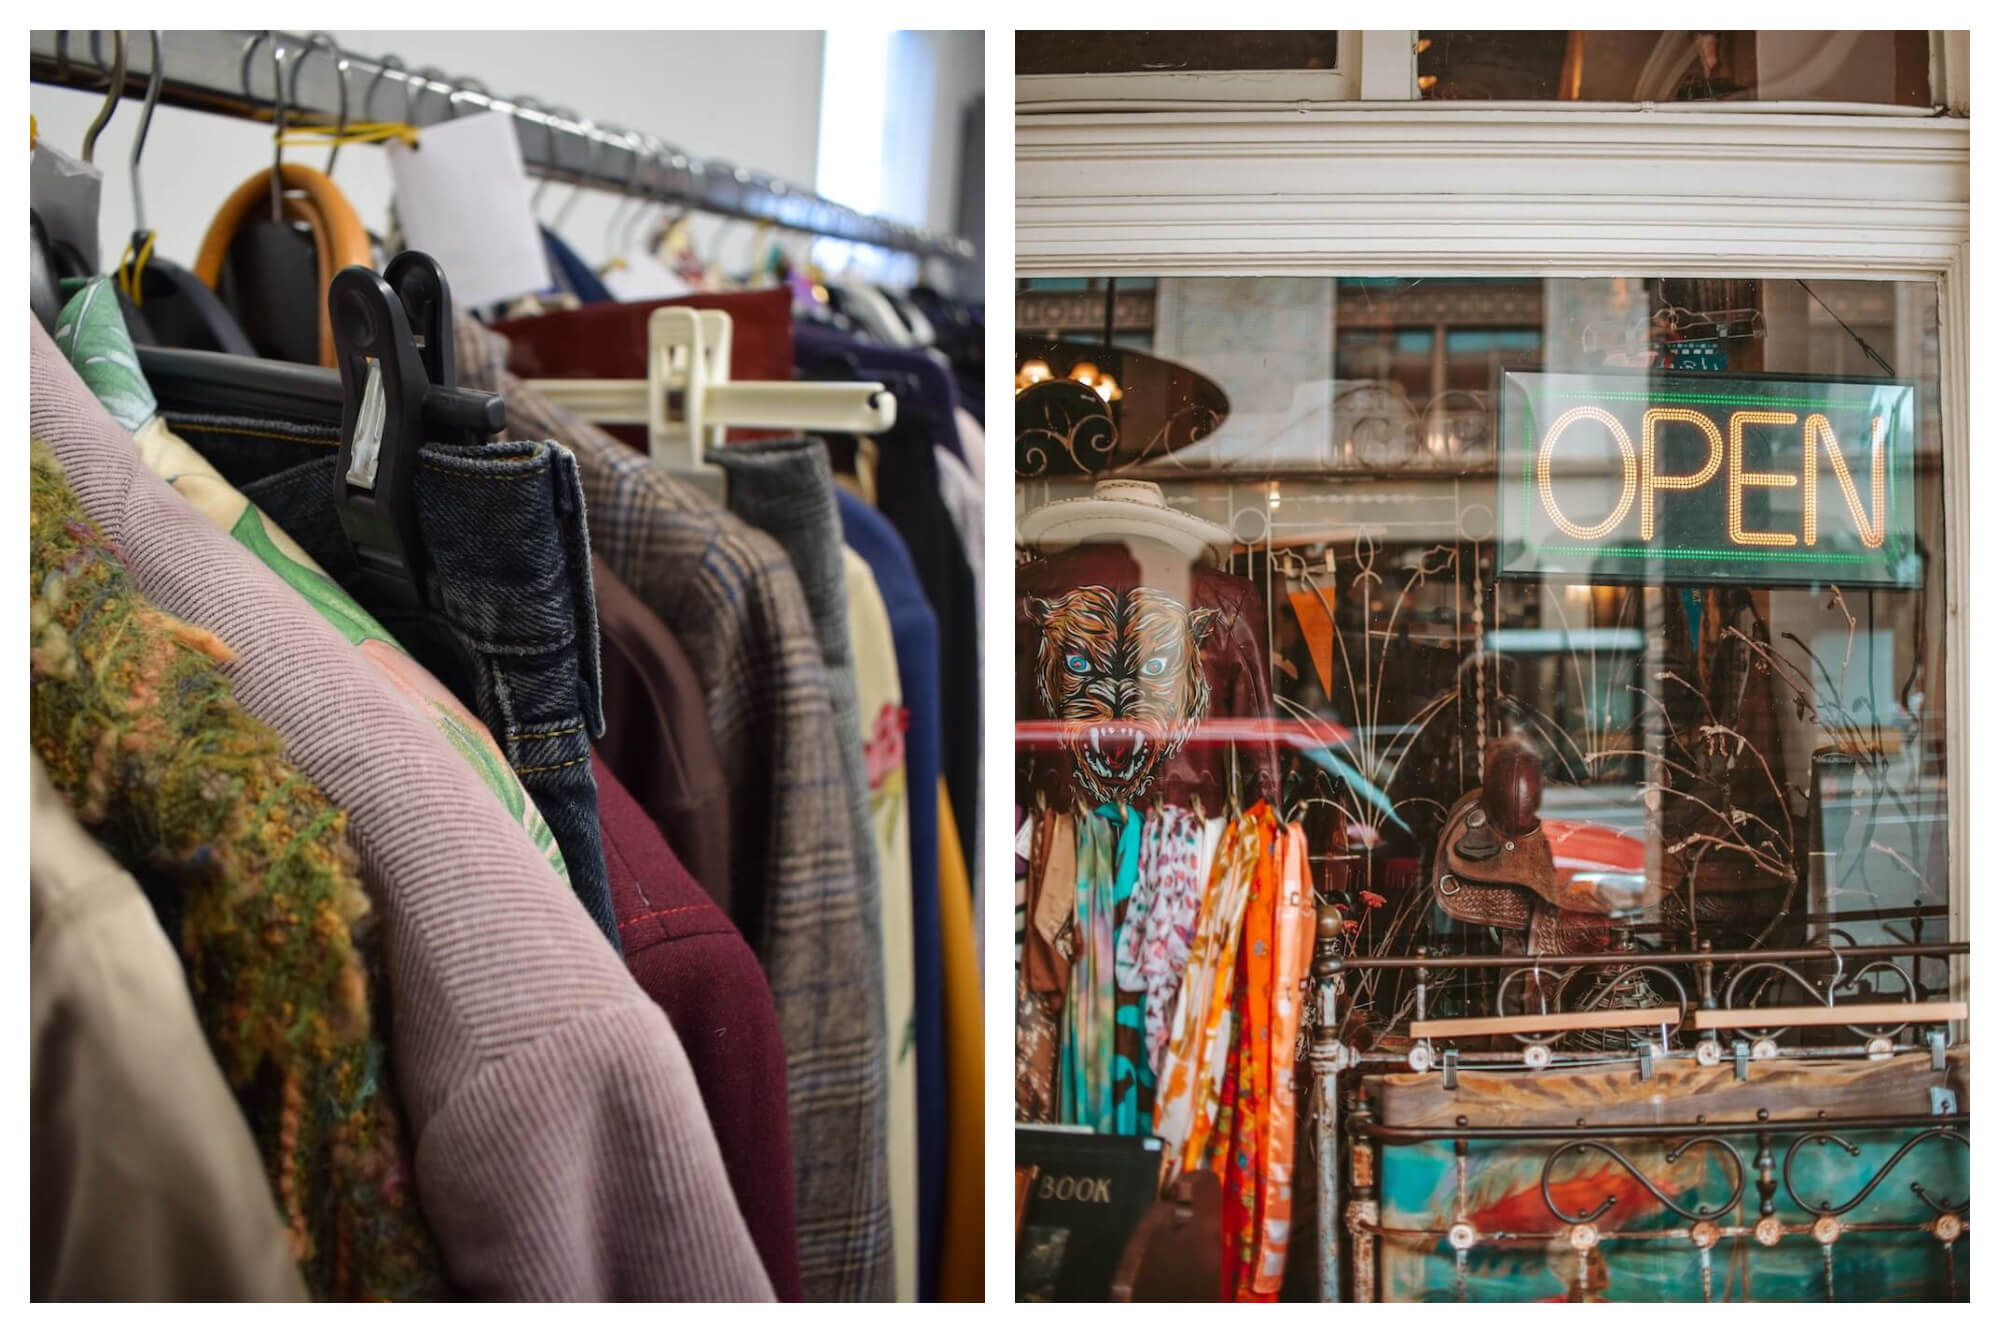 Left: a rack of clothes in a vintage shop.  Right: The outside of a vintage shop, looking through the glass to the interior, featuring eclectic goods.